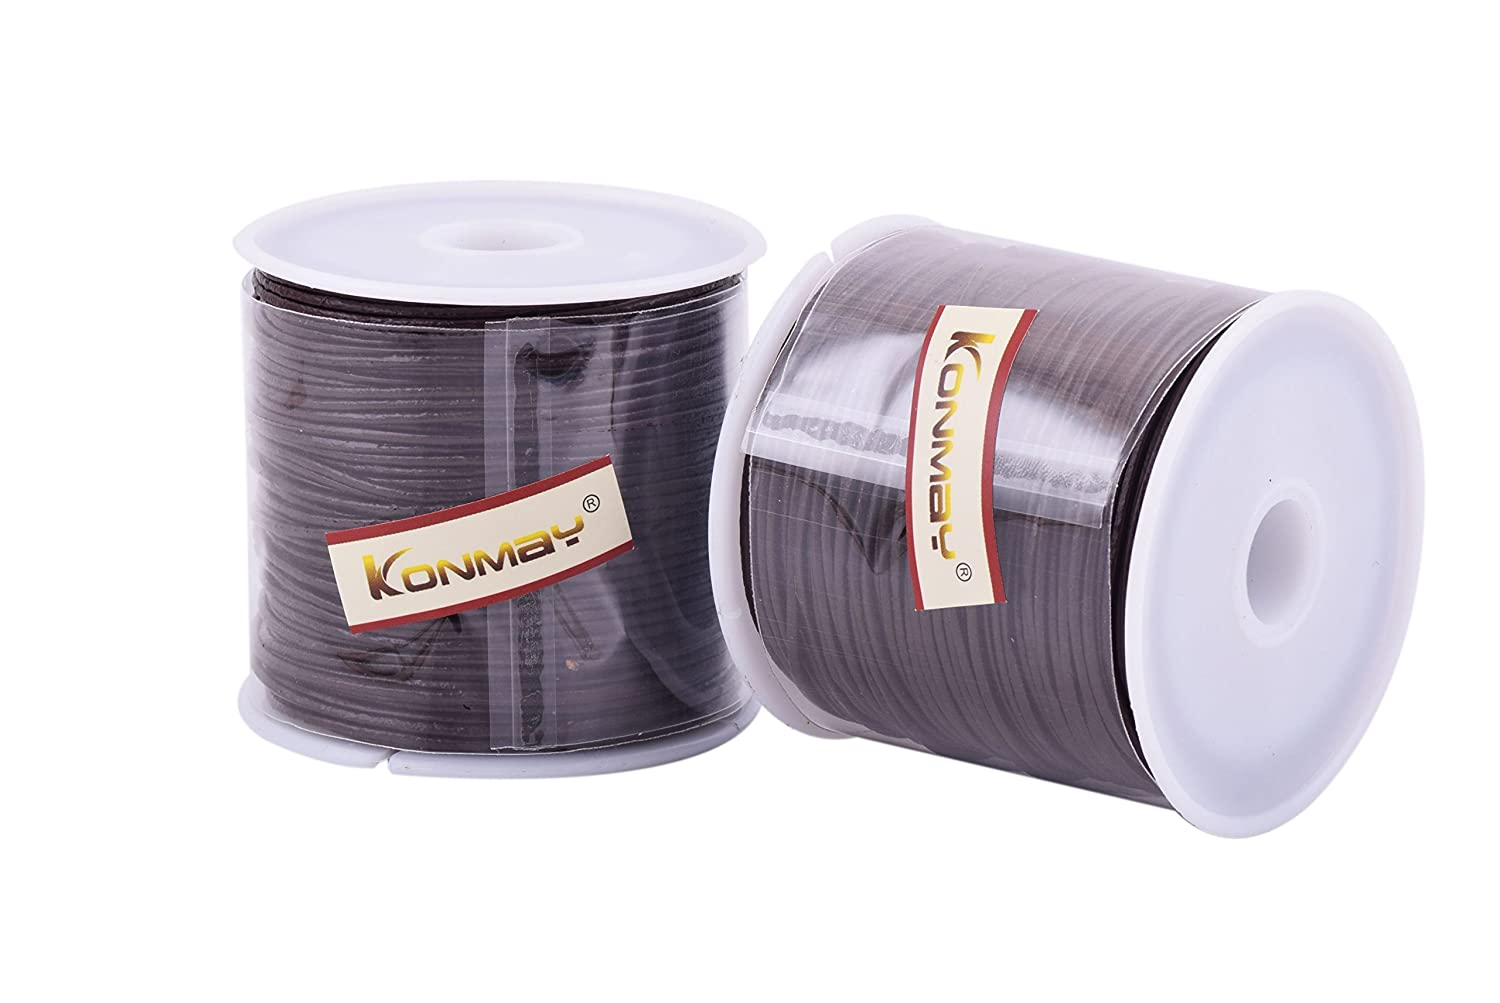 KONMAY 1 Roll 25 Yards 1.0mm Round Genuine//Real Leather Cord Beading String